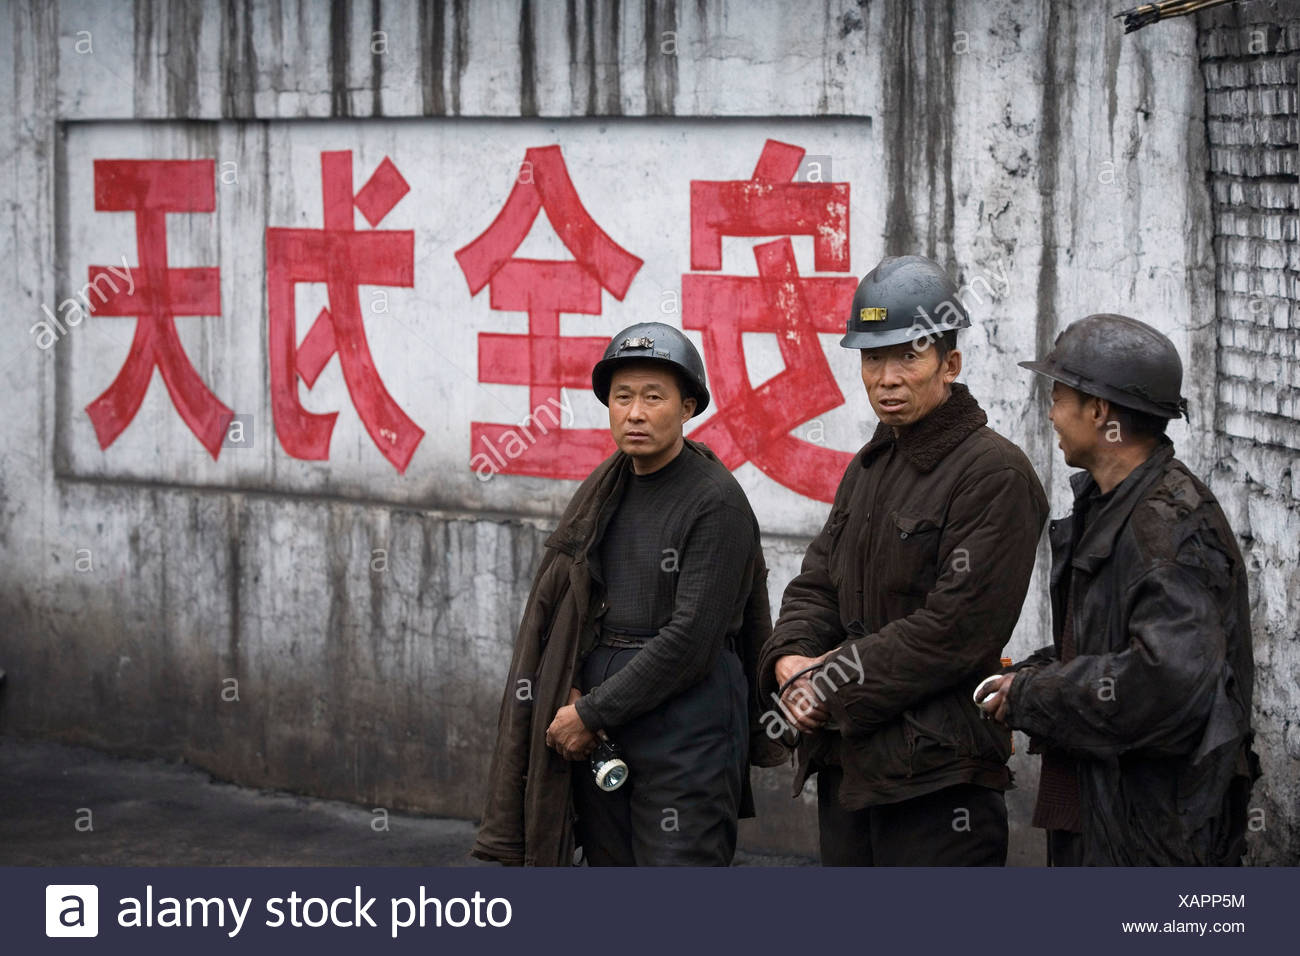 Workers chat at a chinese coal mine, Liulin, Shanxi, China. Stock Photo